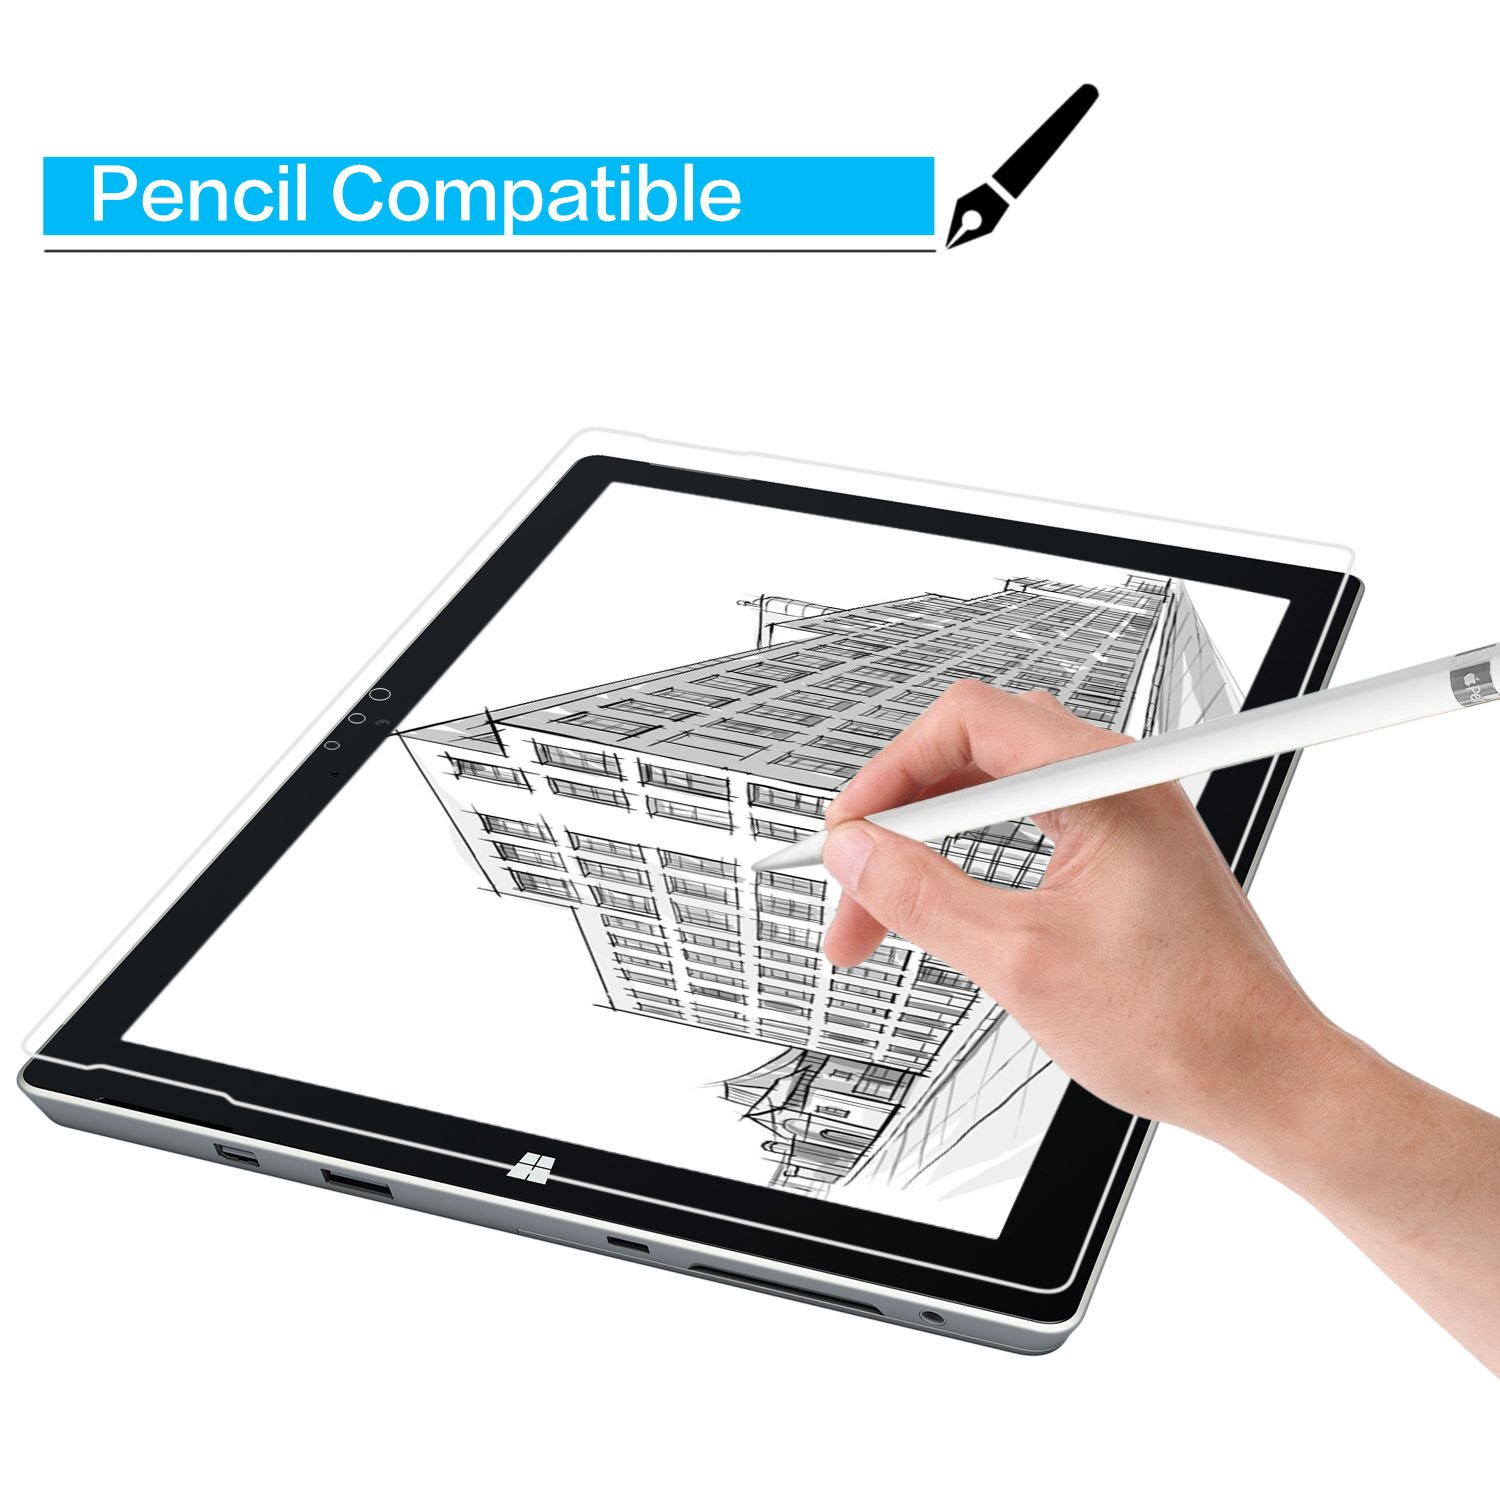 Amazon microsoft surface 3 screen protector 108 inch glass screen protector with 9h hardness 25d round edge crystal clear easy bubble free installation scratch resist computers accessories gamestrikefo Image collections